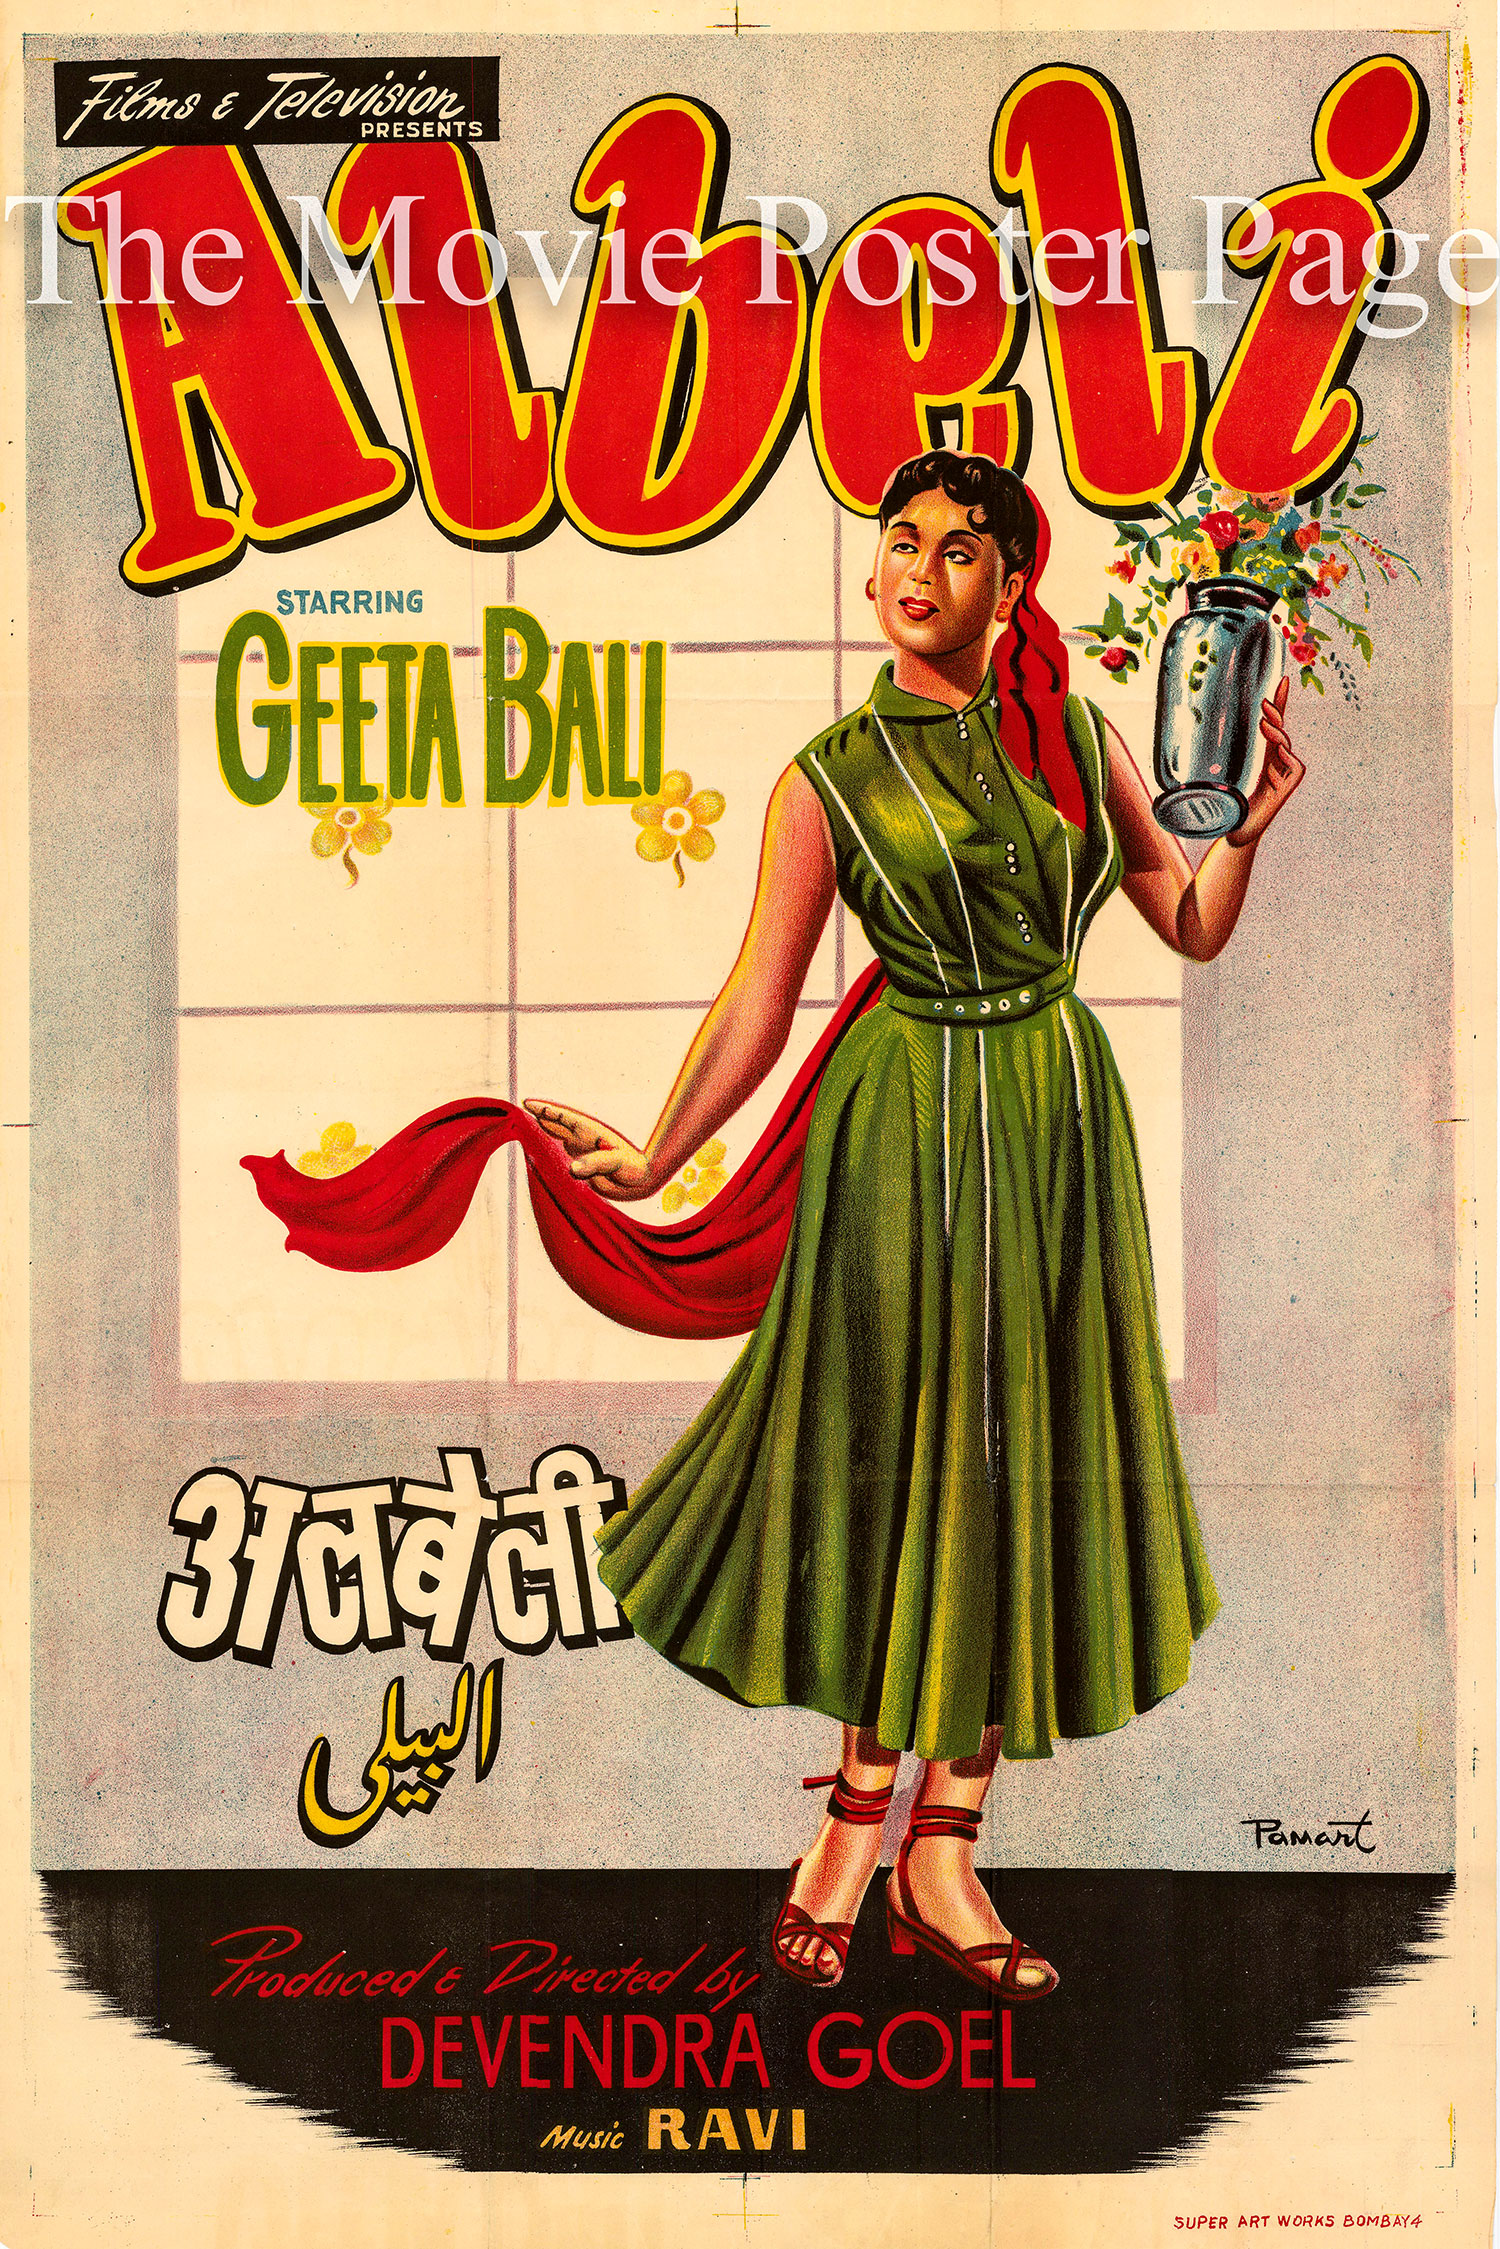 Pictured is an Indian stone lithograph promotional poster for the 1955 Devendra Goel film Albeli starring Geeta Bali.